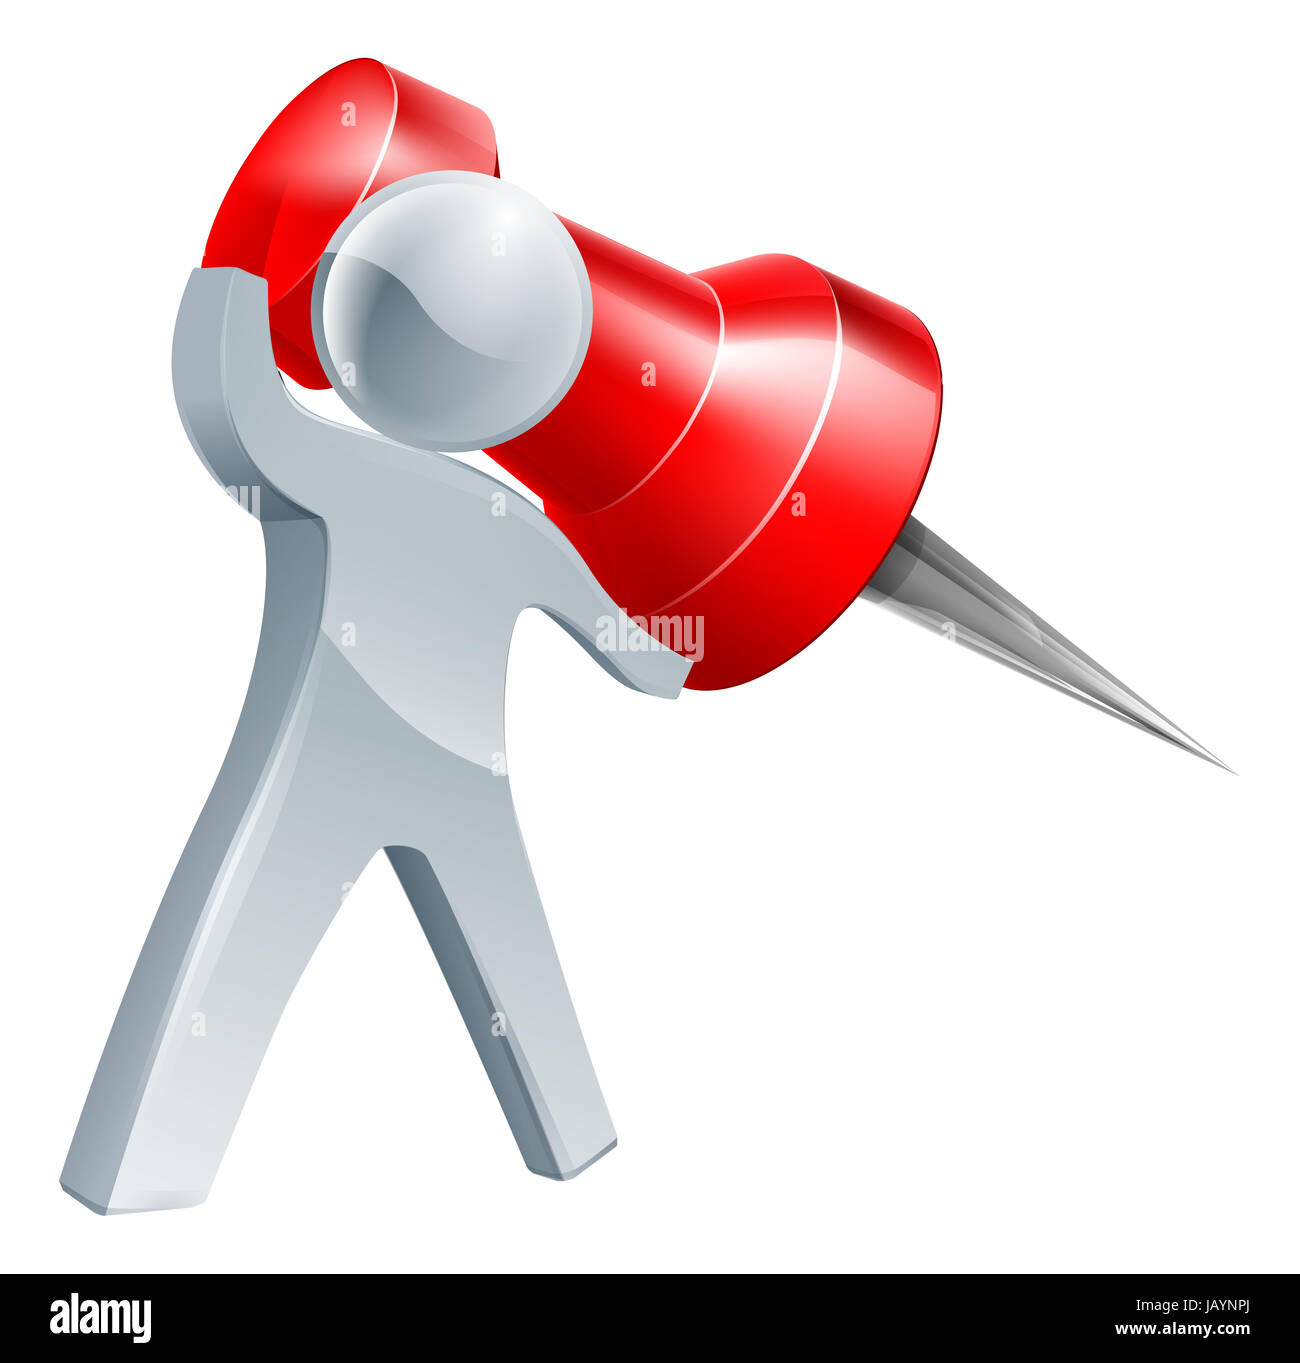 Giant map pin man about to pin something with a giant red map pin - Stock Image